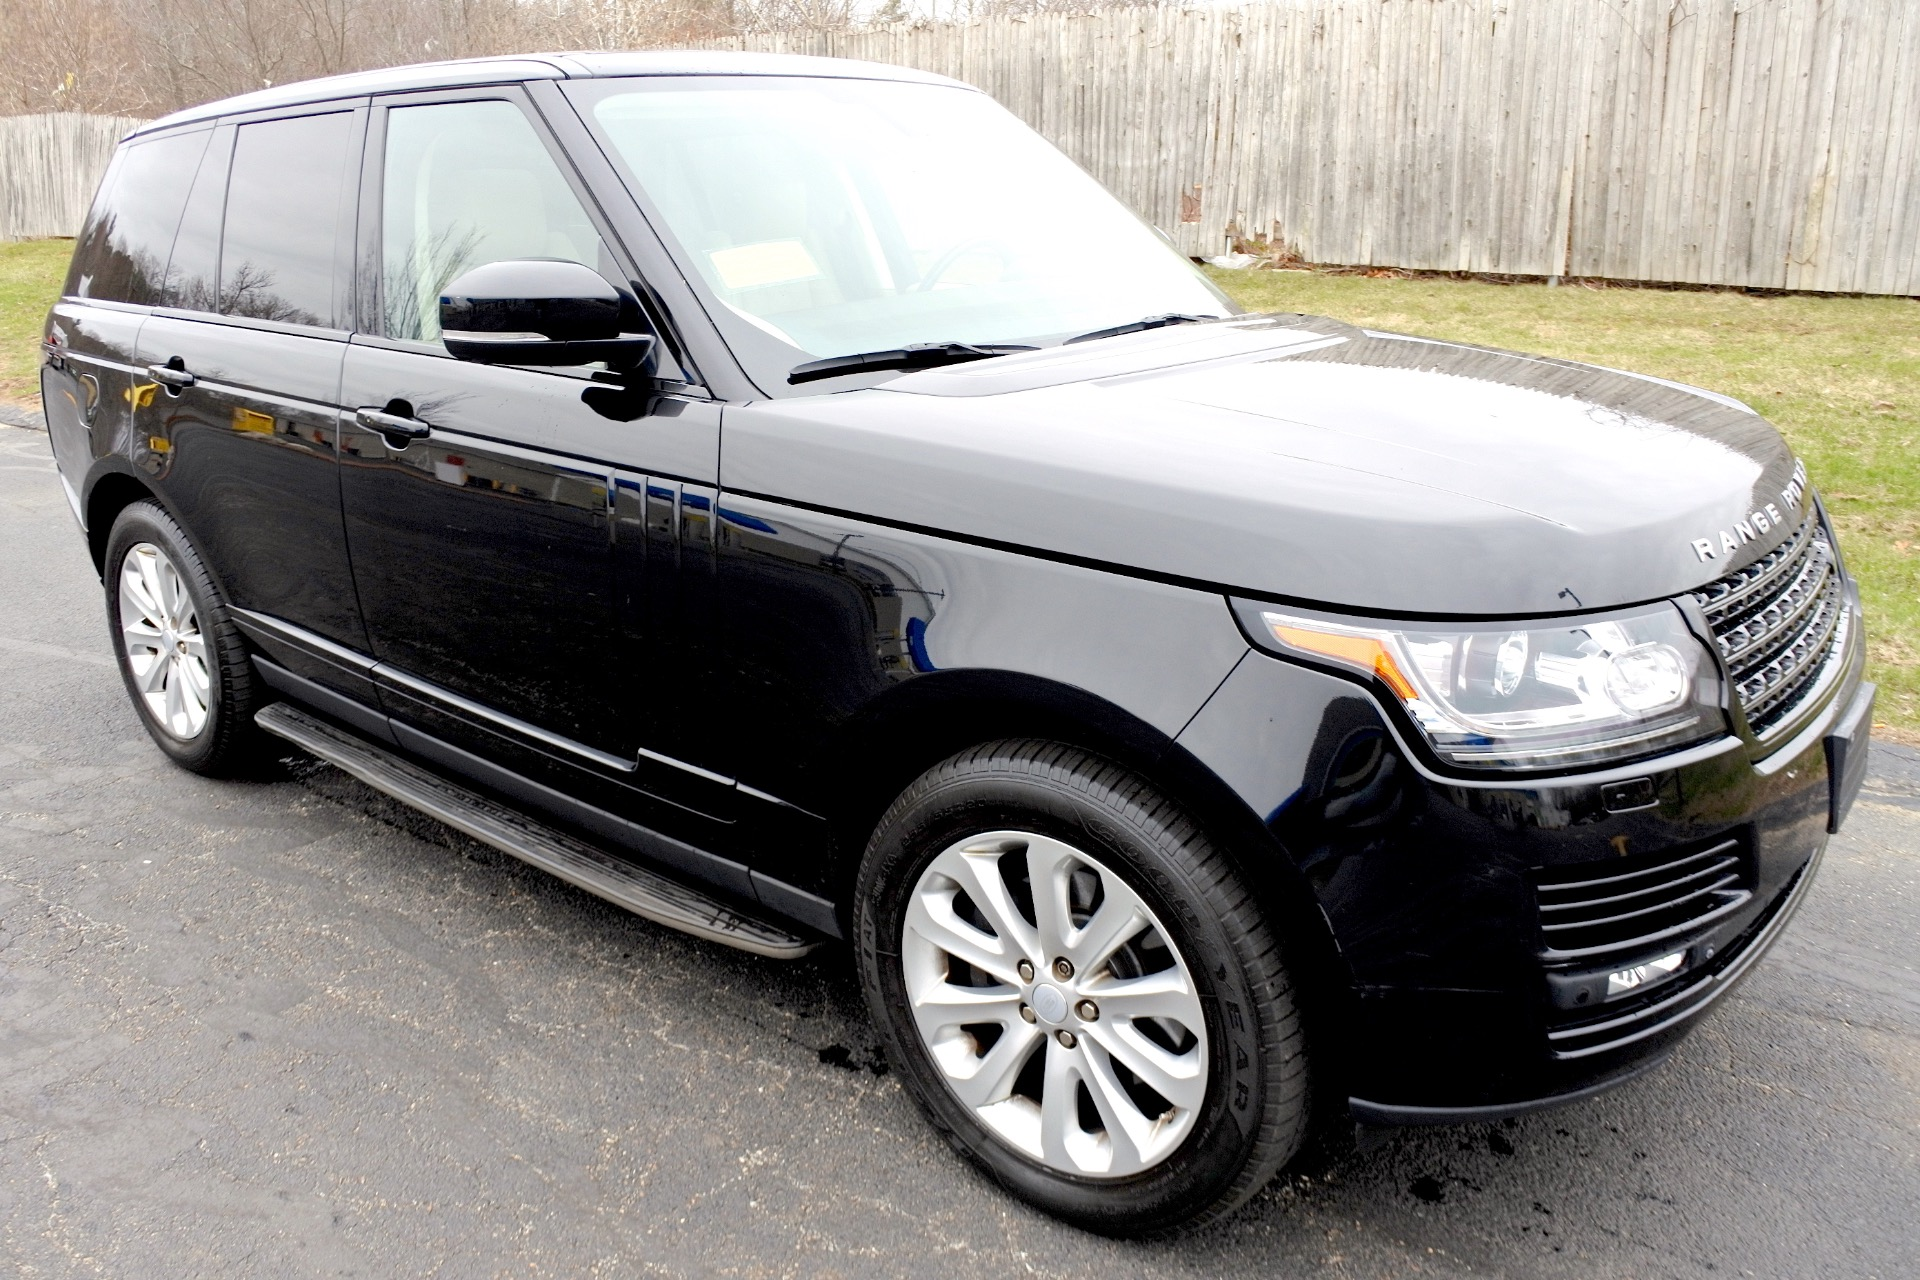 Used 2015 Land Rover Range Rover HSE Used 2015 Land Rover Range Rover HSE for sale  at Metro West Motorcars LLC in Shrewsbury MA 7